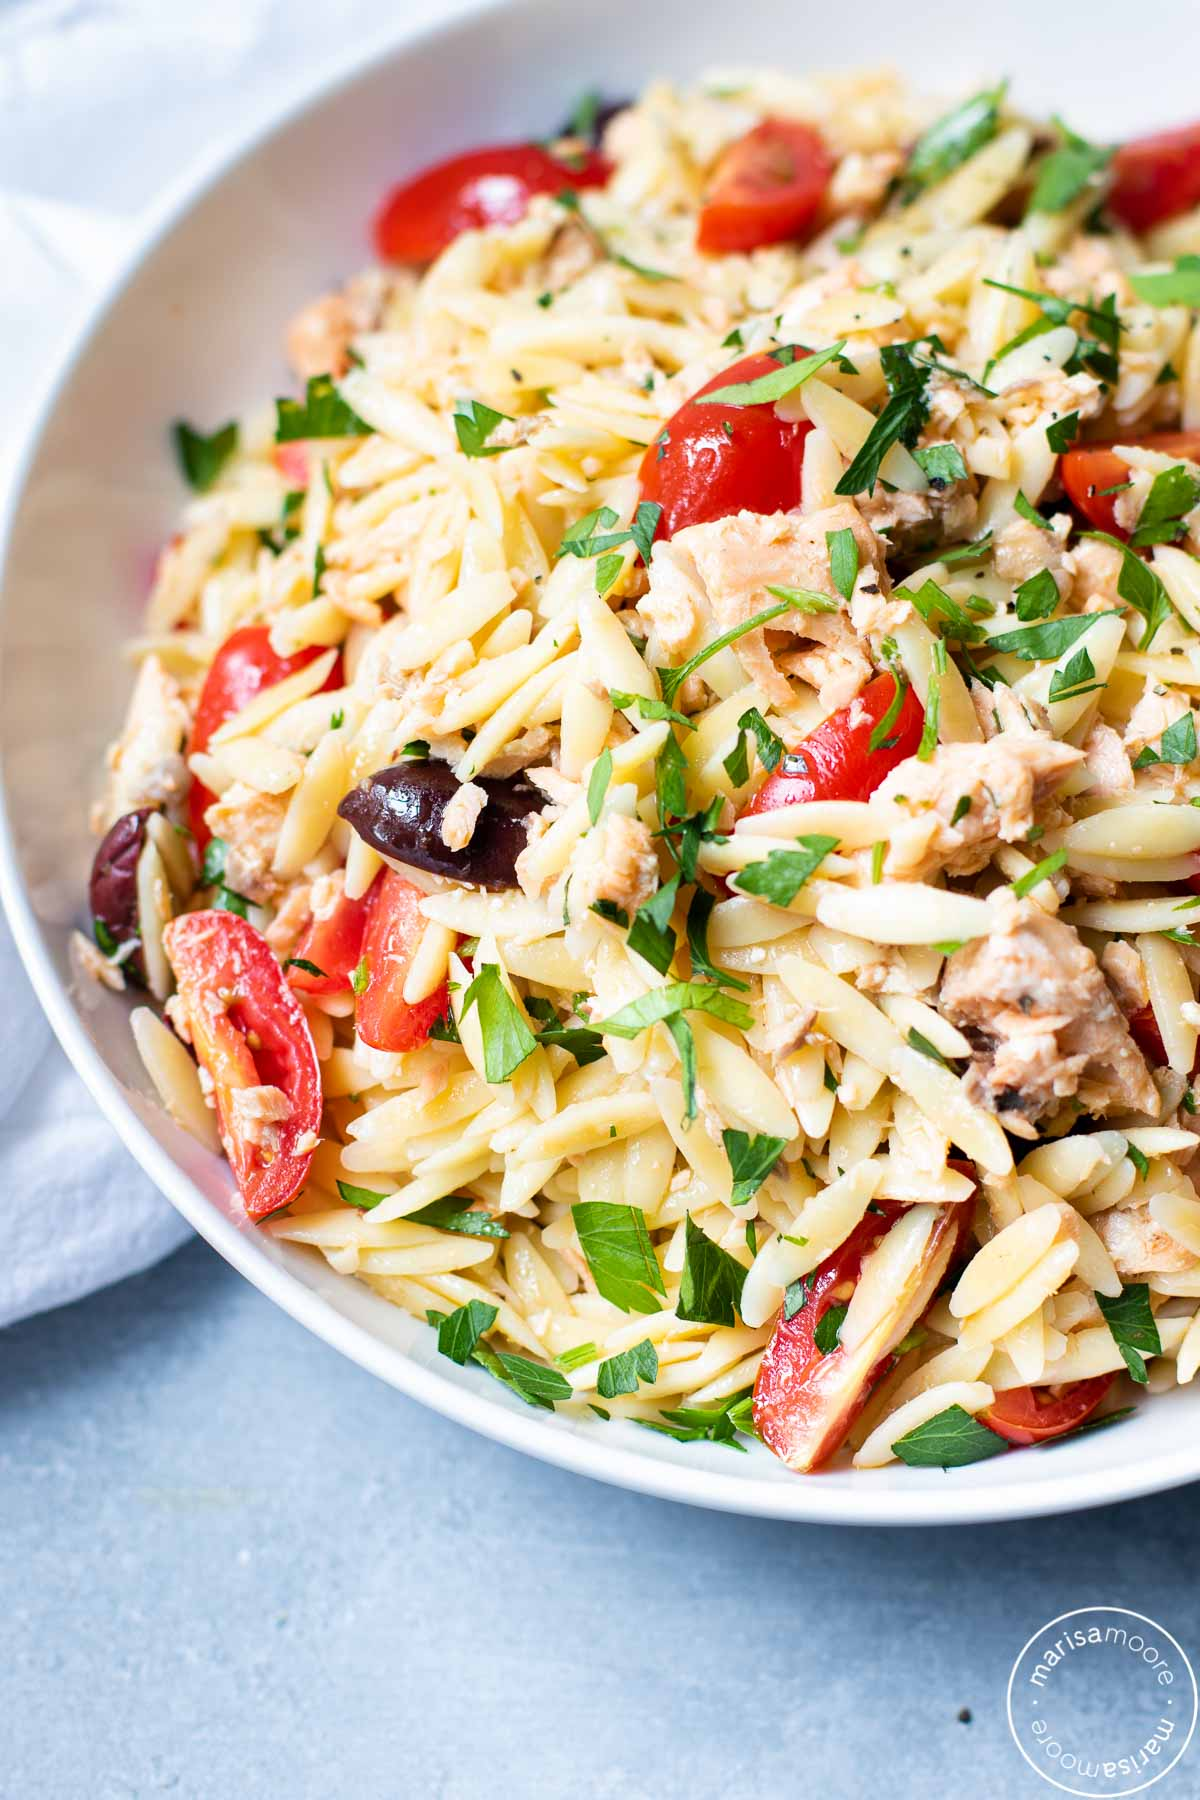 Orzo salad in a white bowl